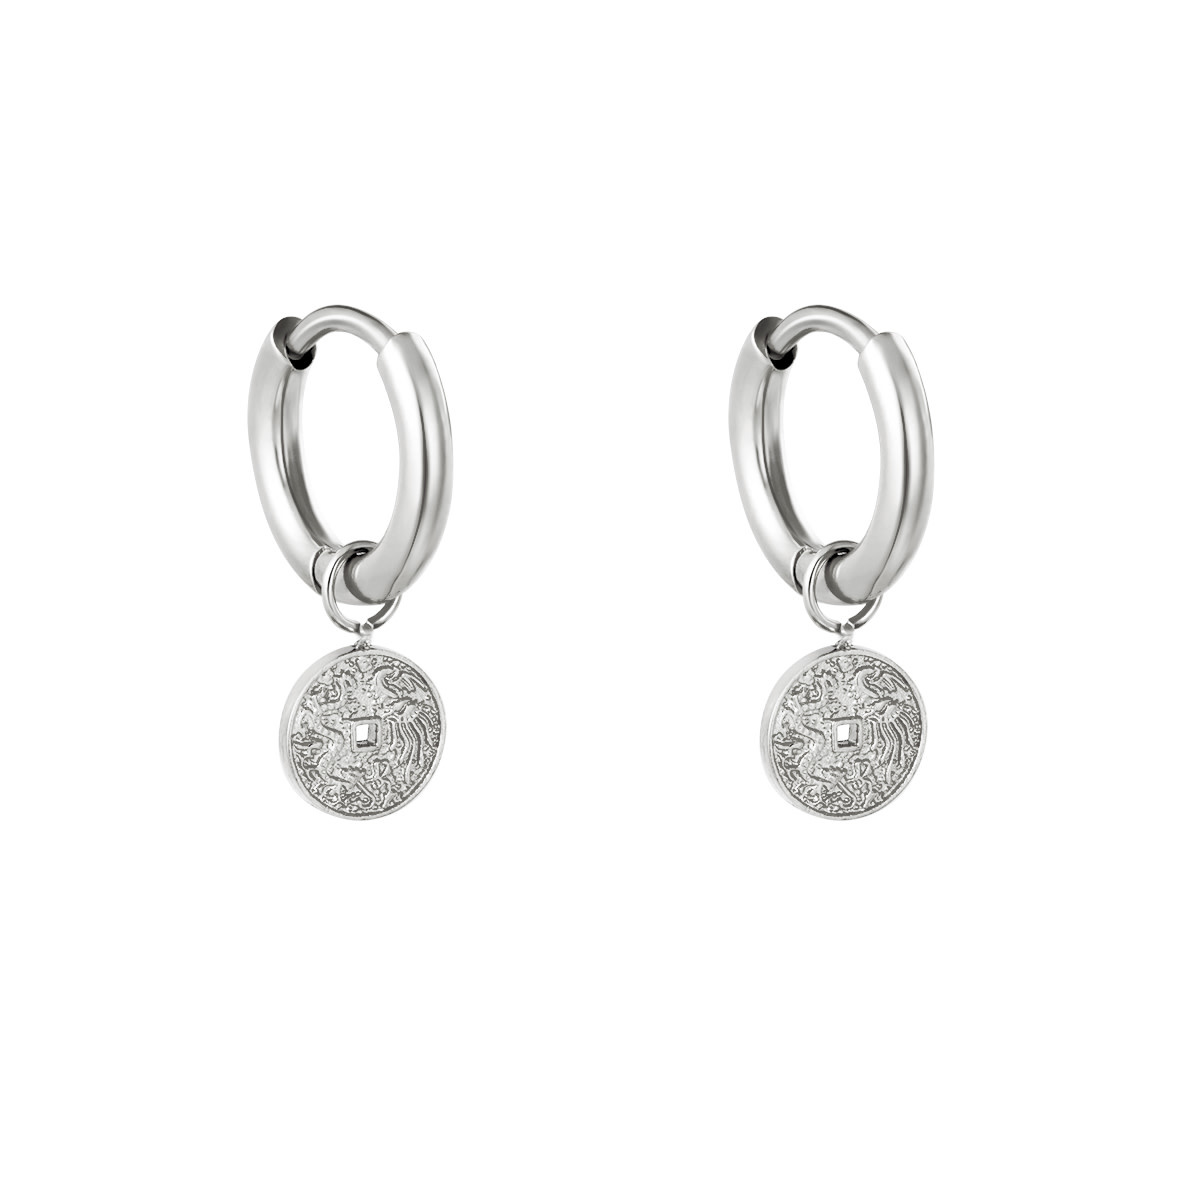 With love Earrings Bristol silver